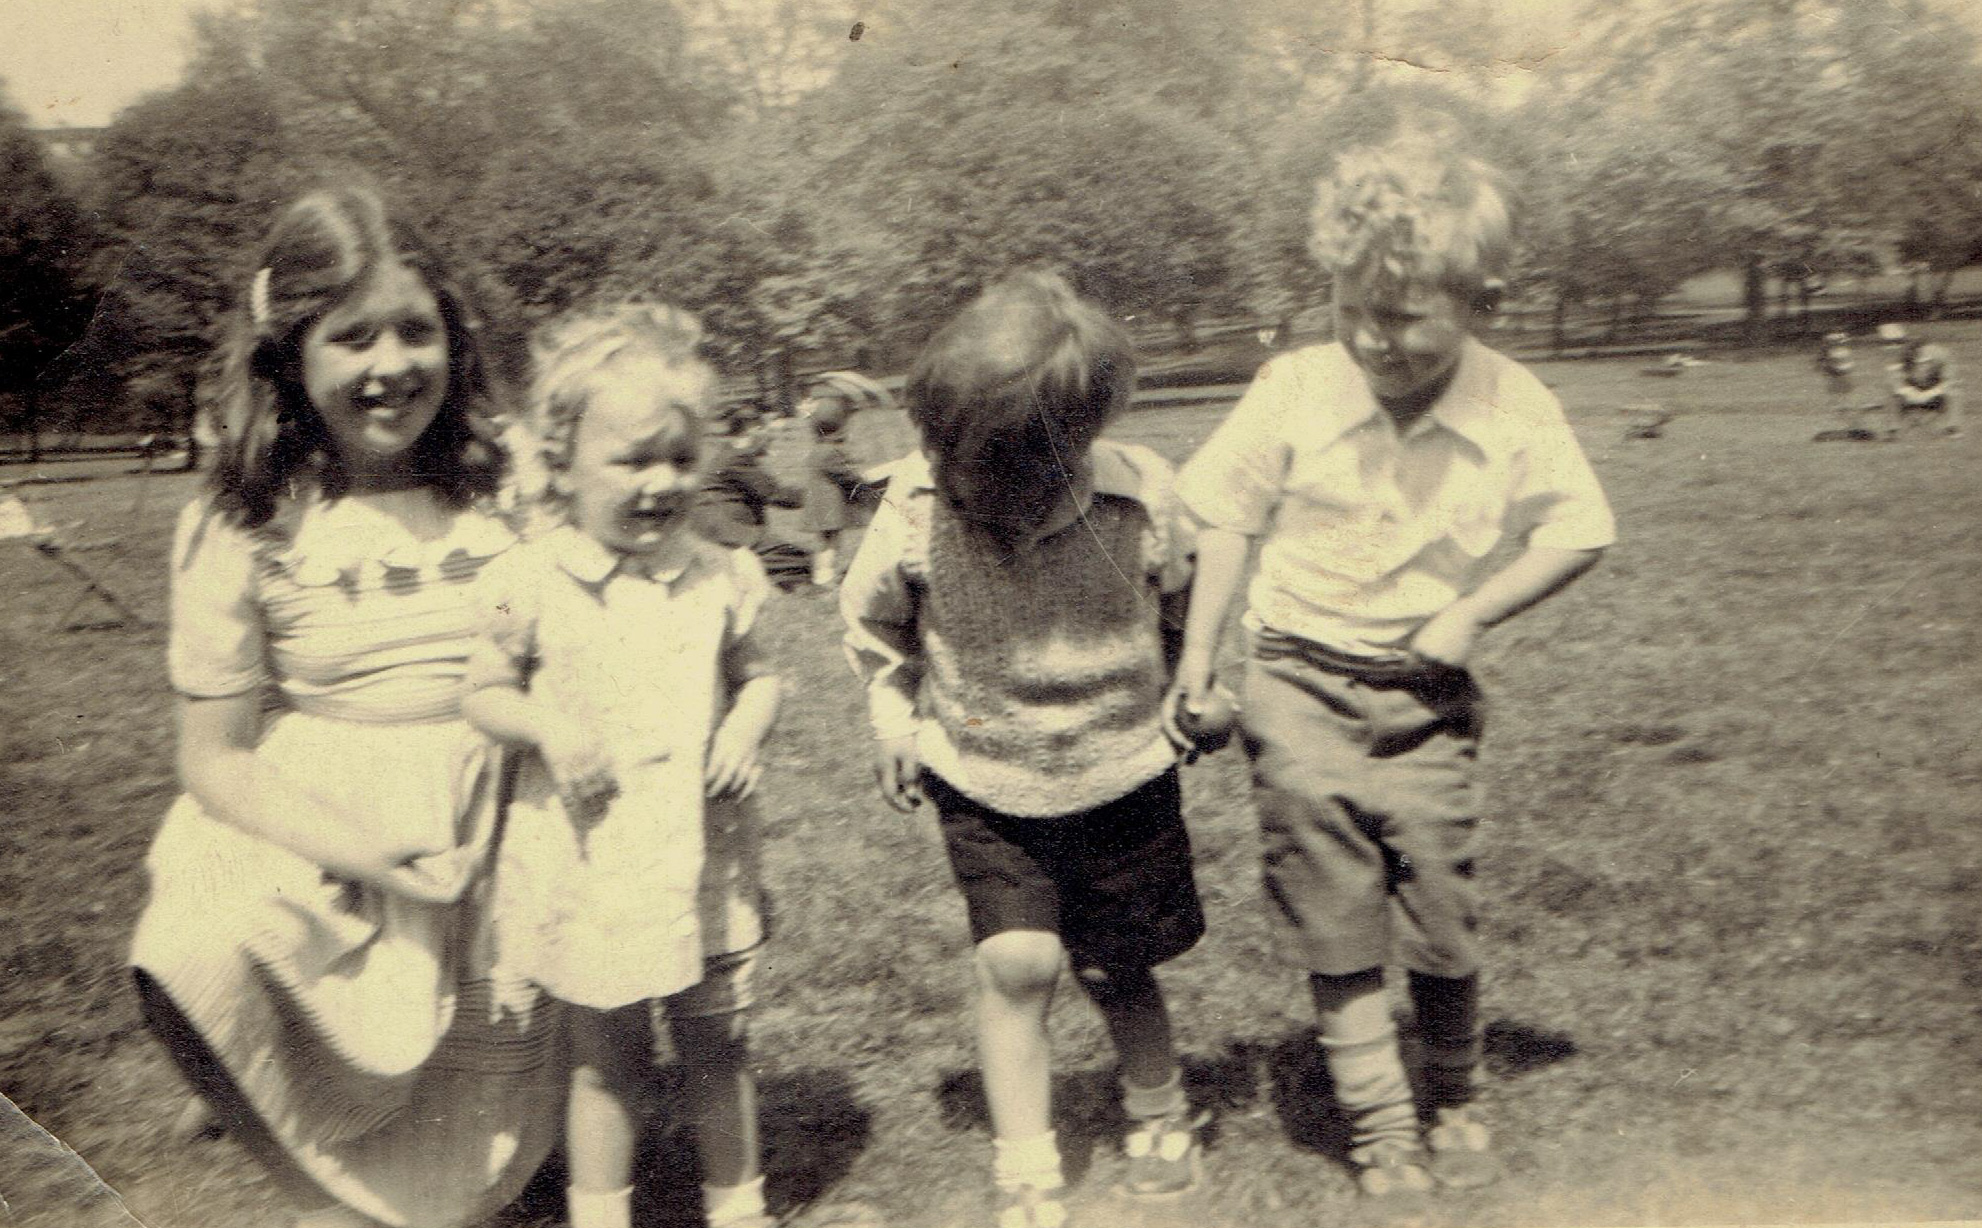 4 children face the camera but James Adcock looks away, again.